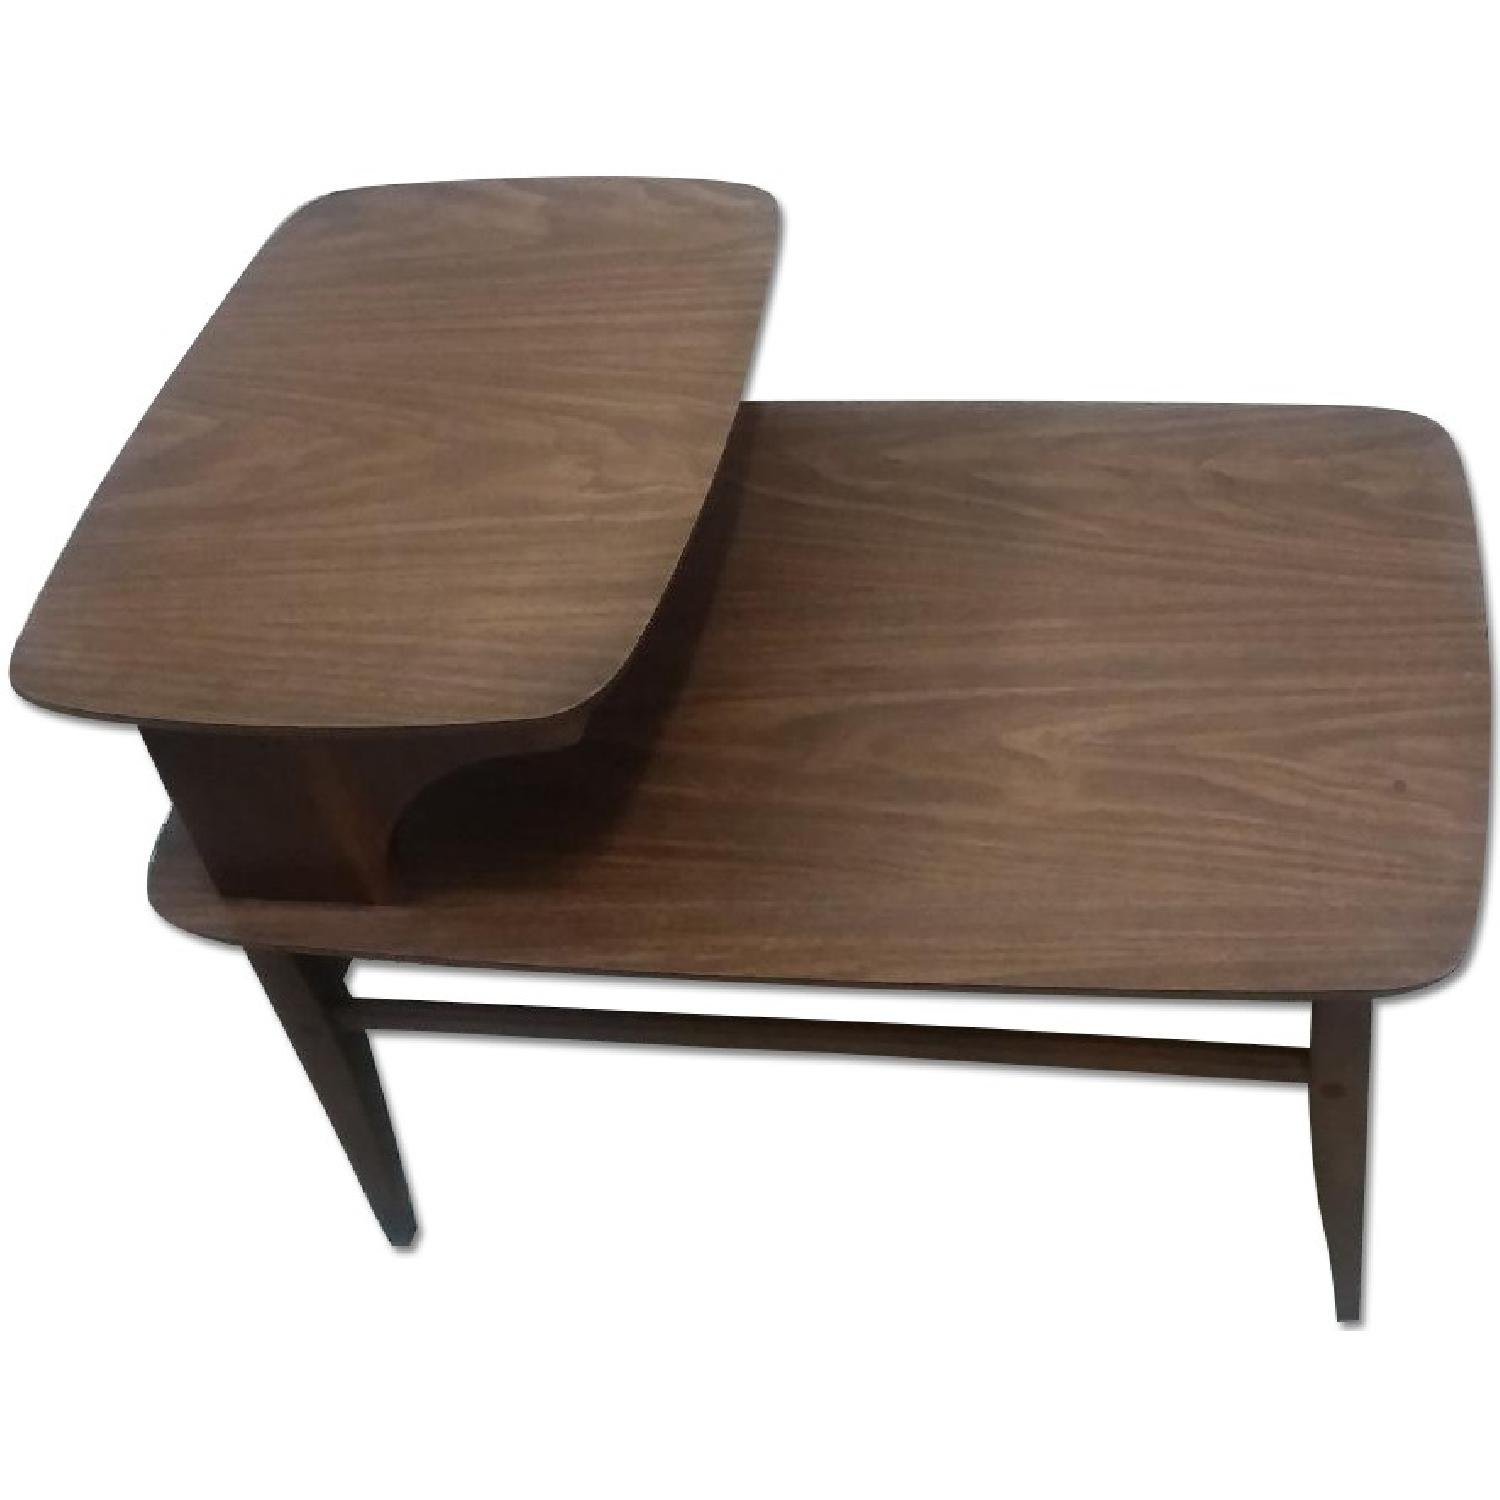 Retro mid century two tier end table aptdeco for Retro side table